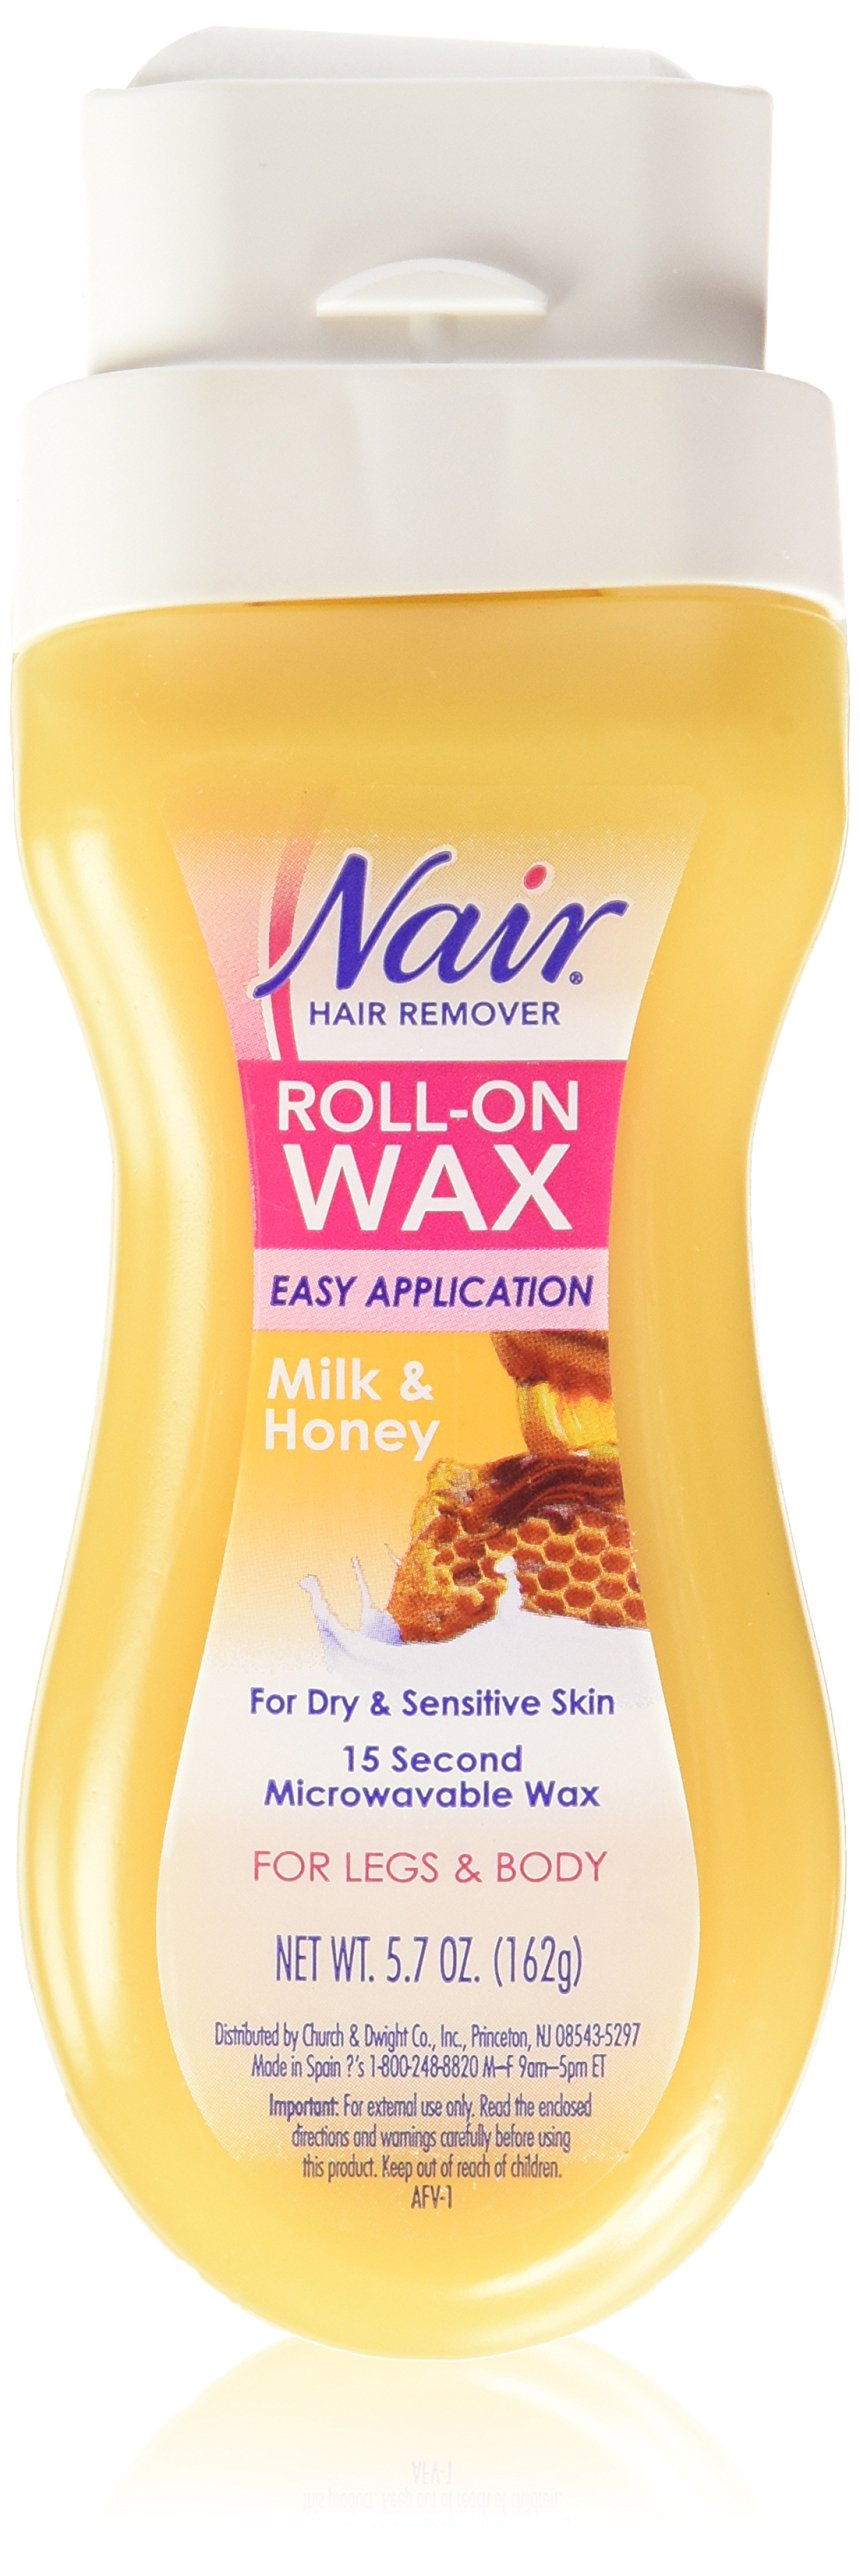 Nair Hair Remover Roll-On Wax 5.7 oz (Pack of 2)